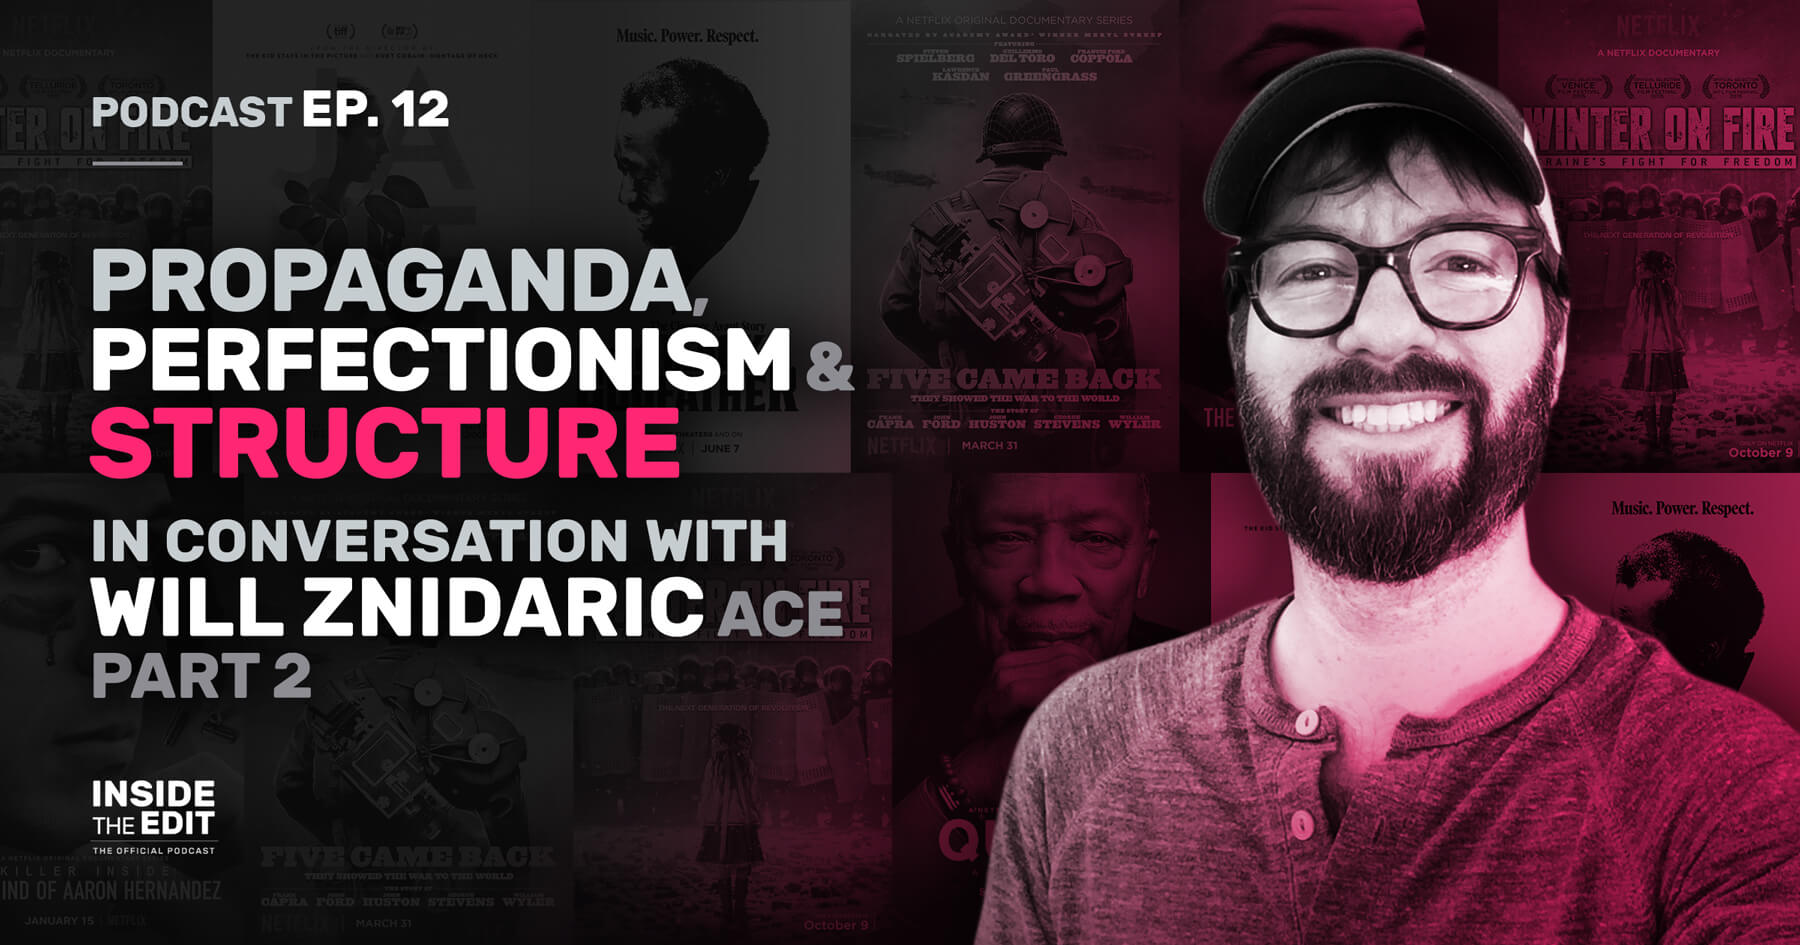 Propaganda, Perfectionism & Structure: In Conversation with Will Znidaric Part 2